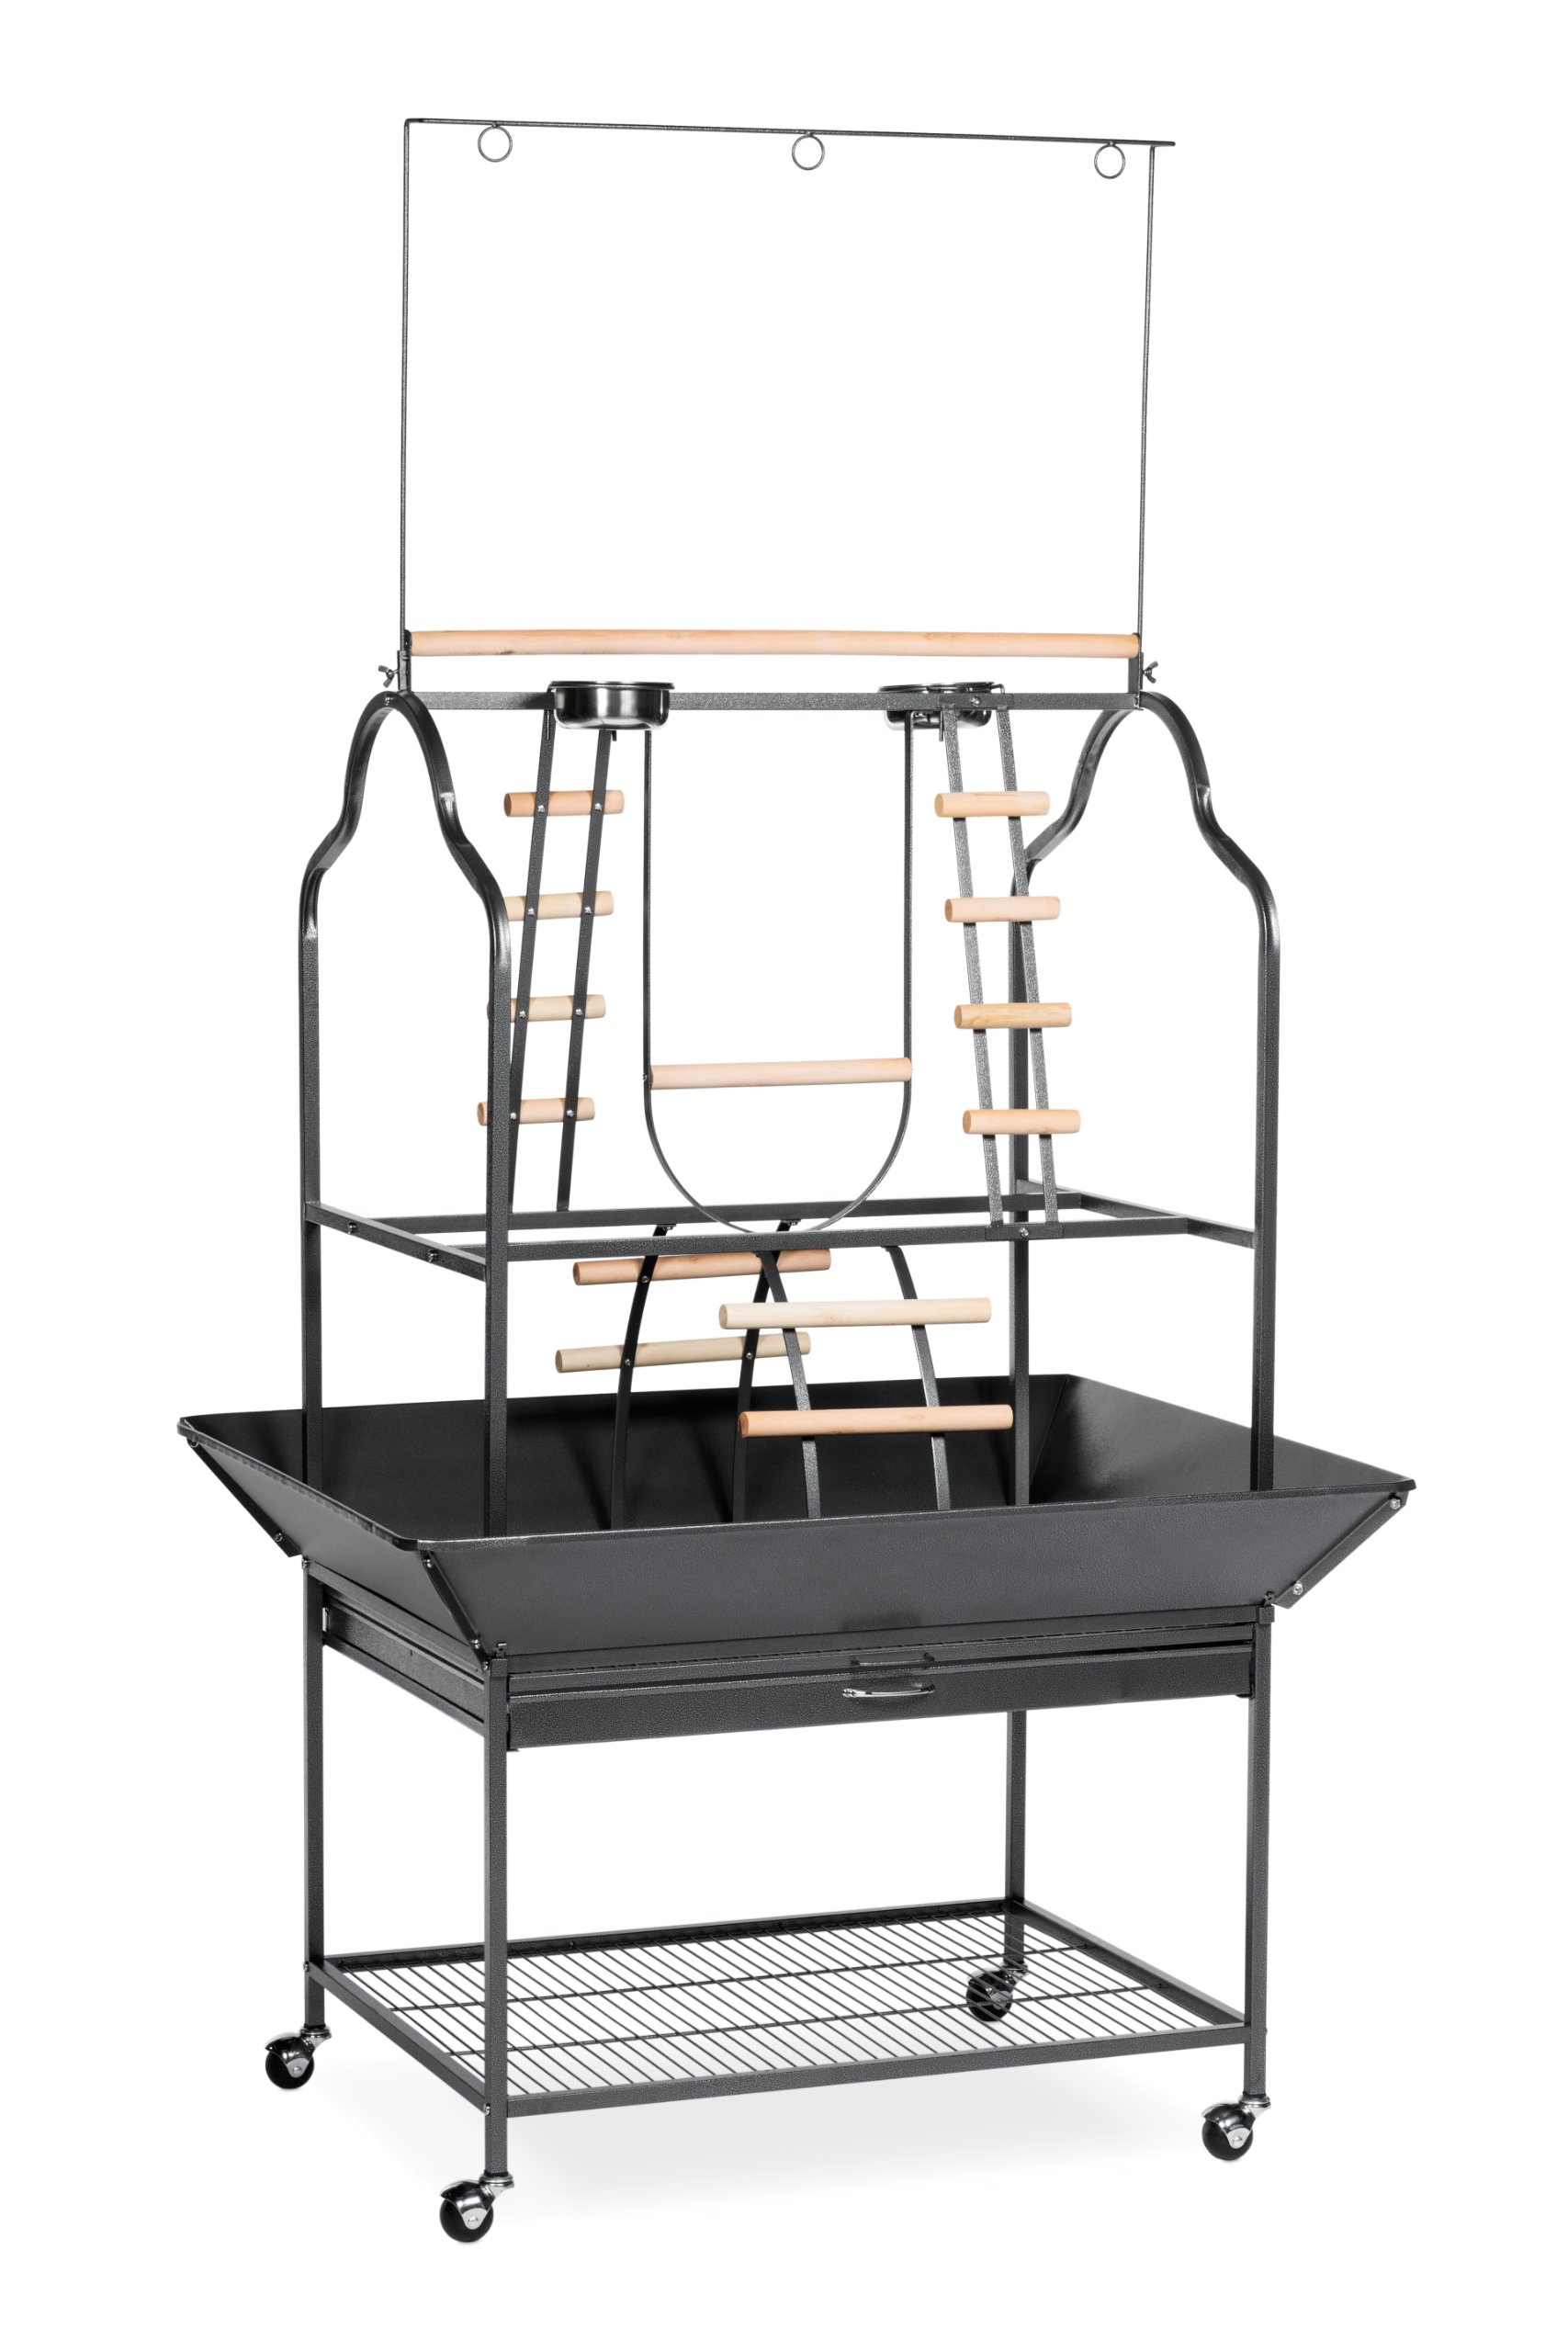 Prevue Hendryx 3180 Pet Products Parrot Playstand, Black Hammertone by Prevue Pet Products